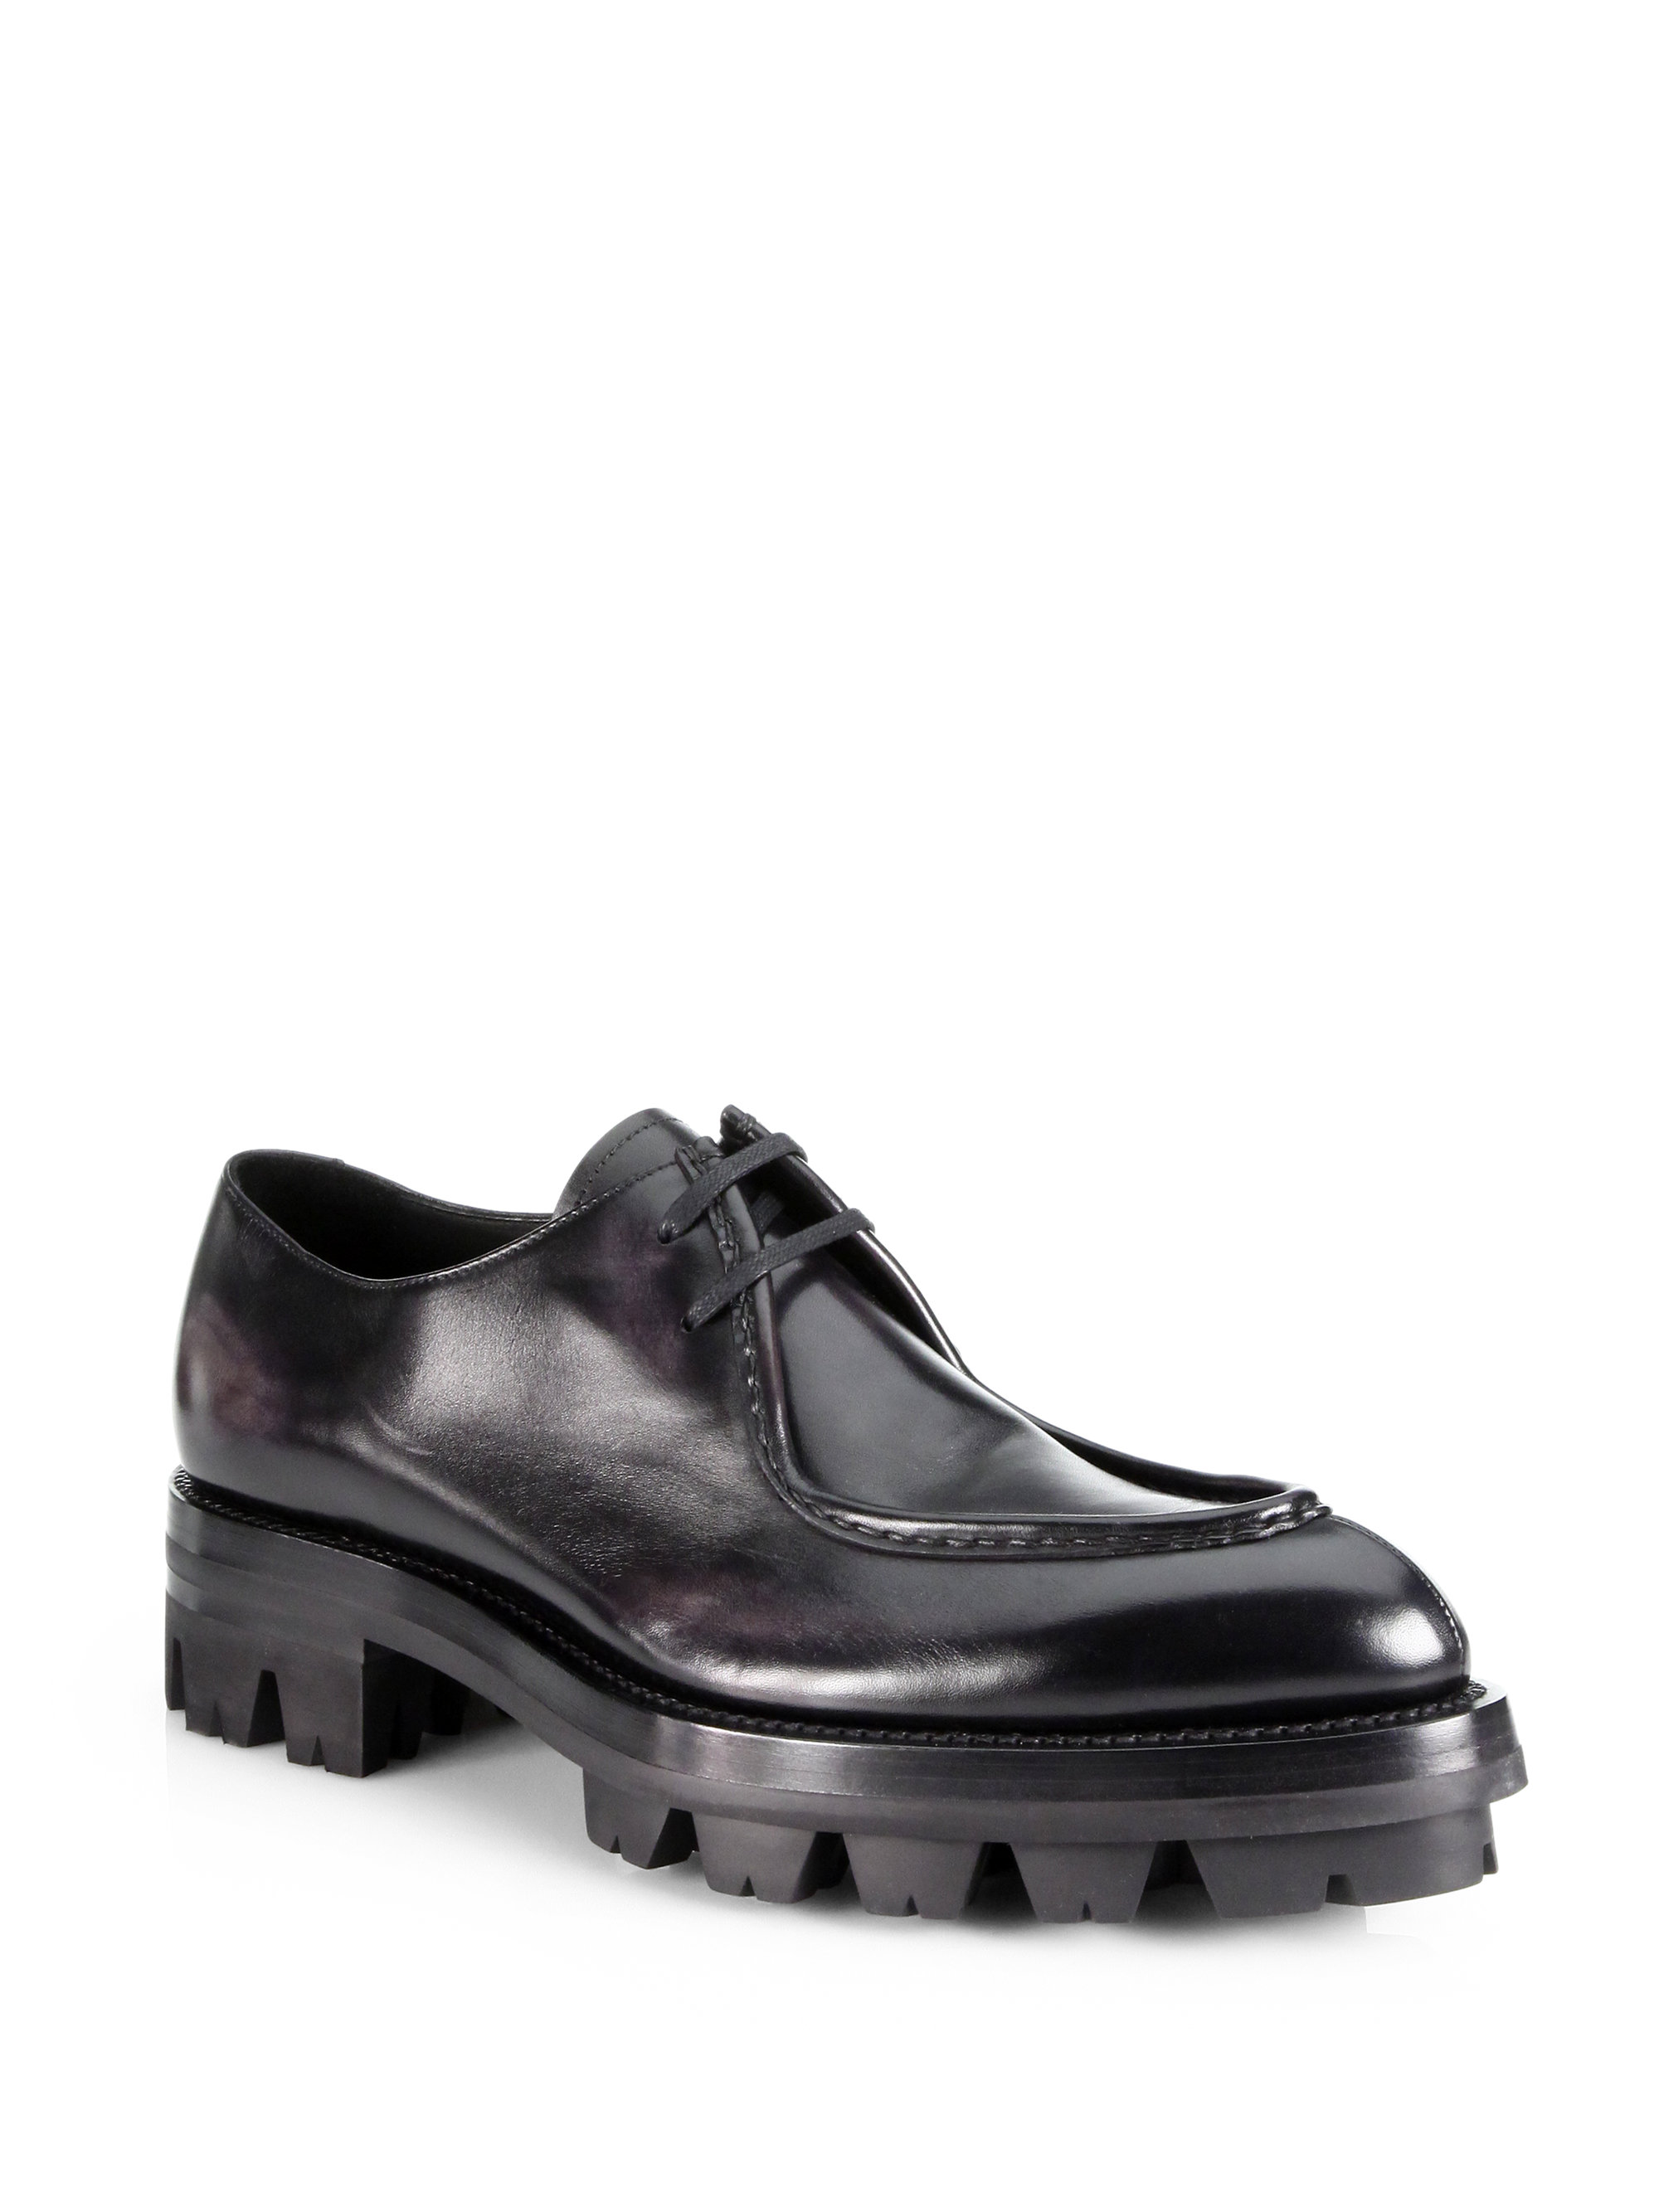 Rubber Rings For Men >> Prada Runway Calfskin Laceup with Rubber Lug Sole in Black for Men | Lyst